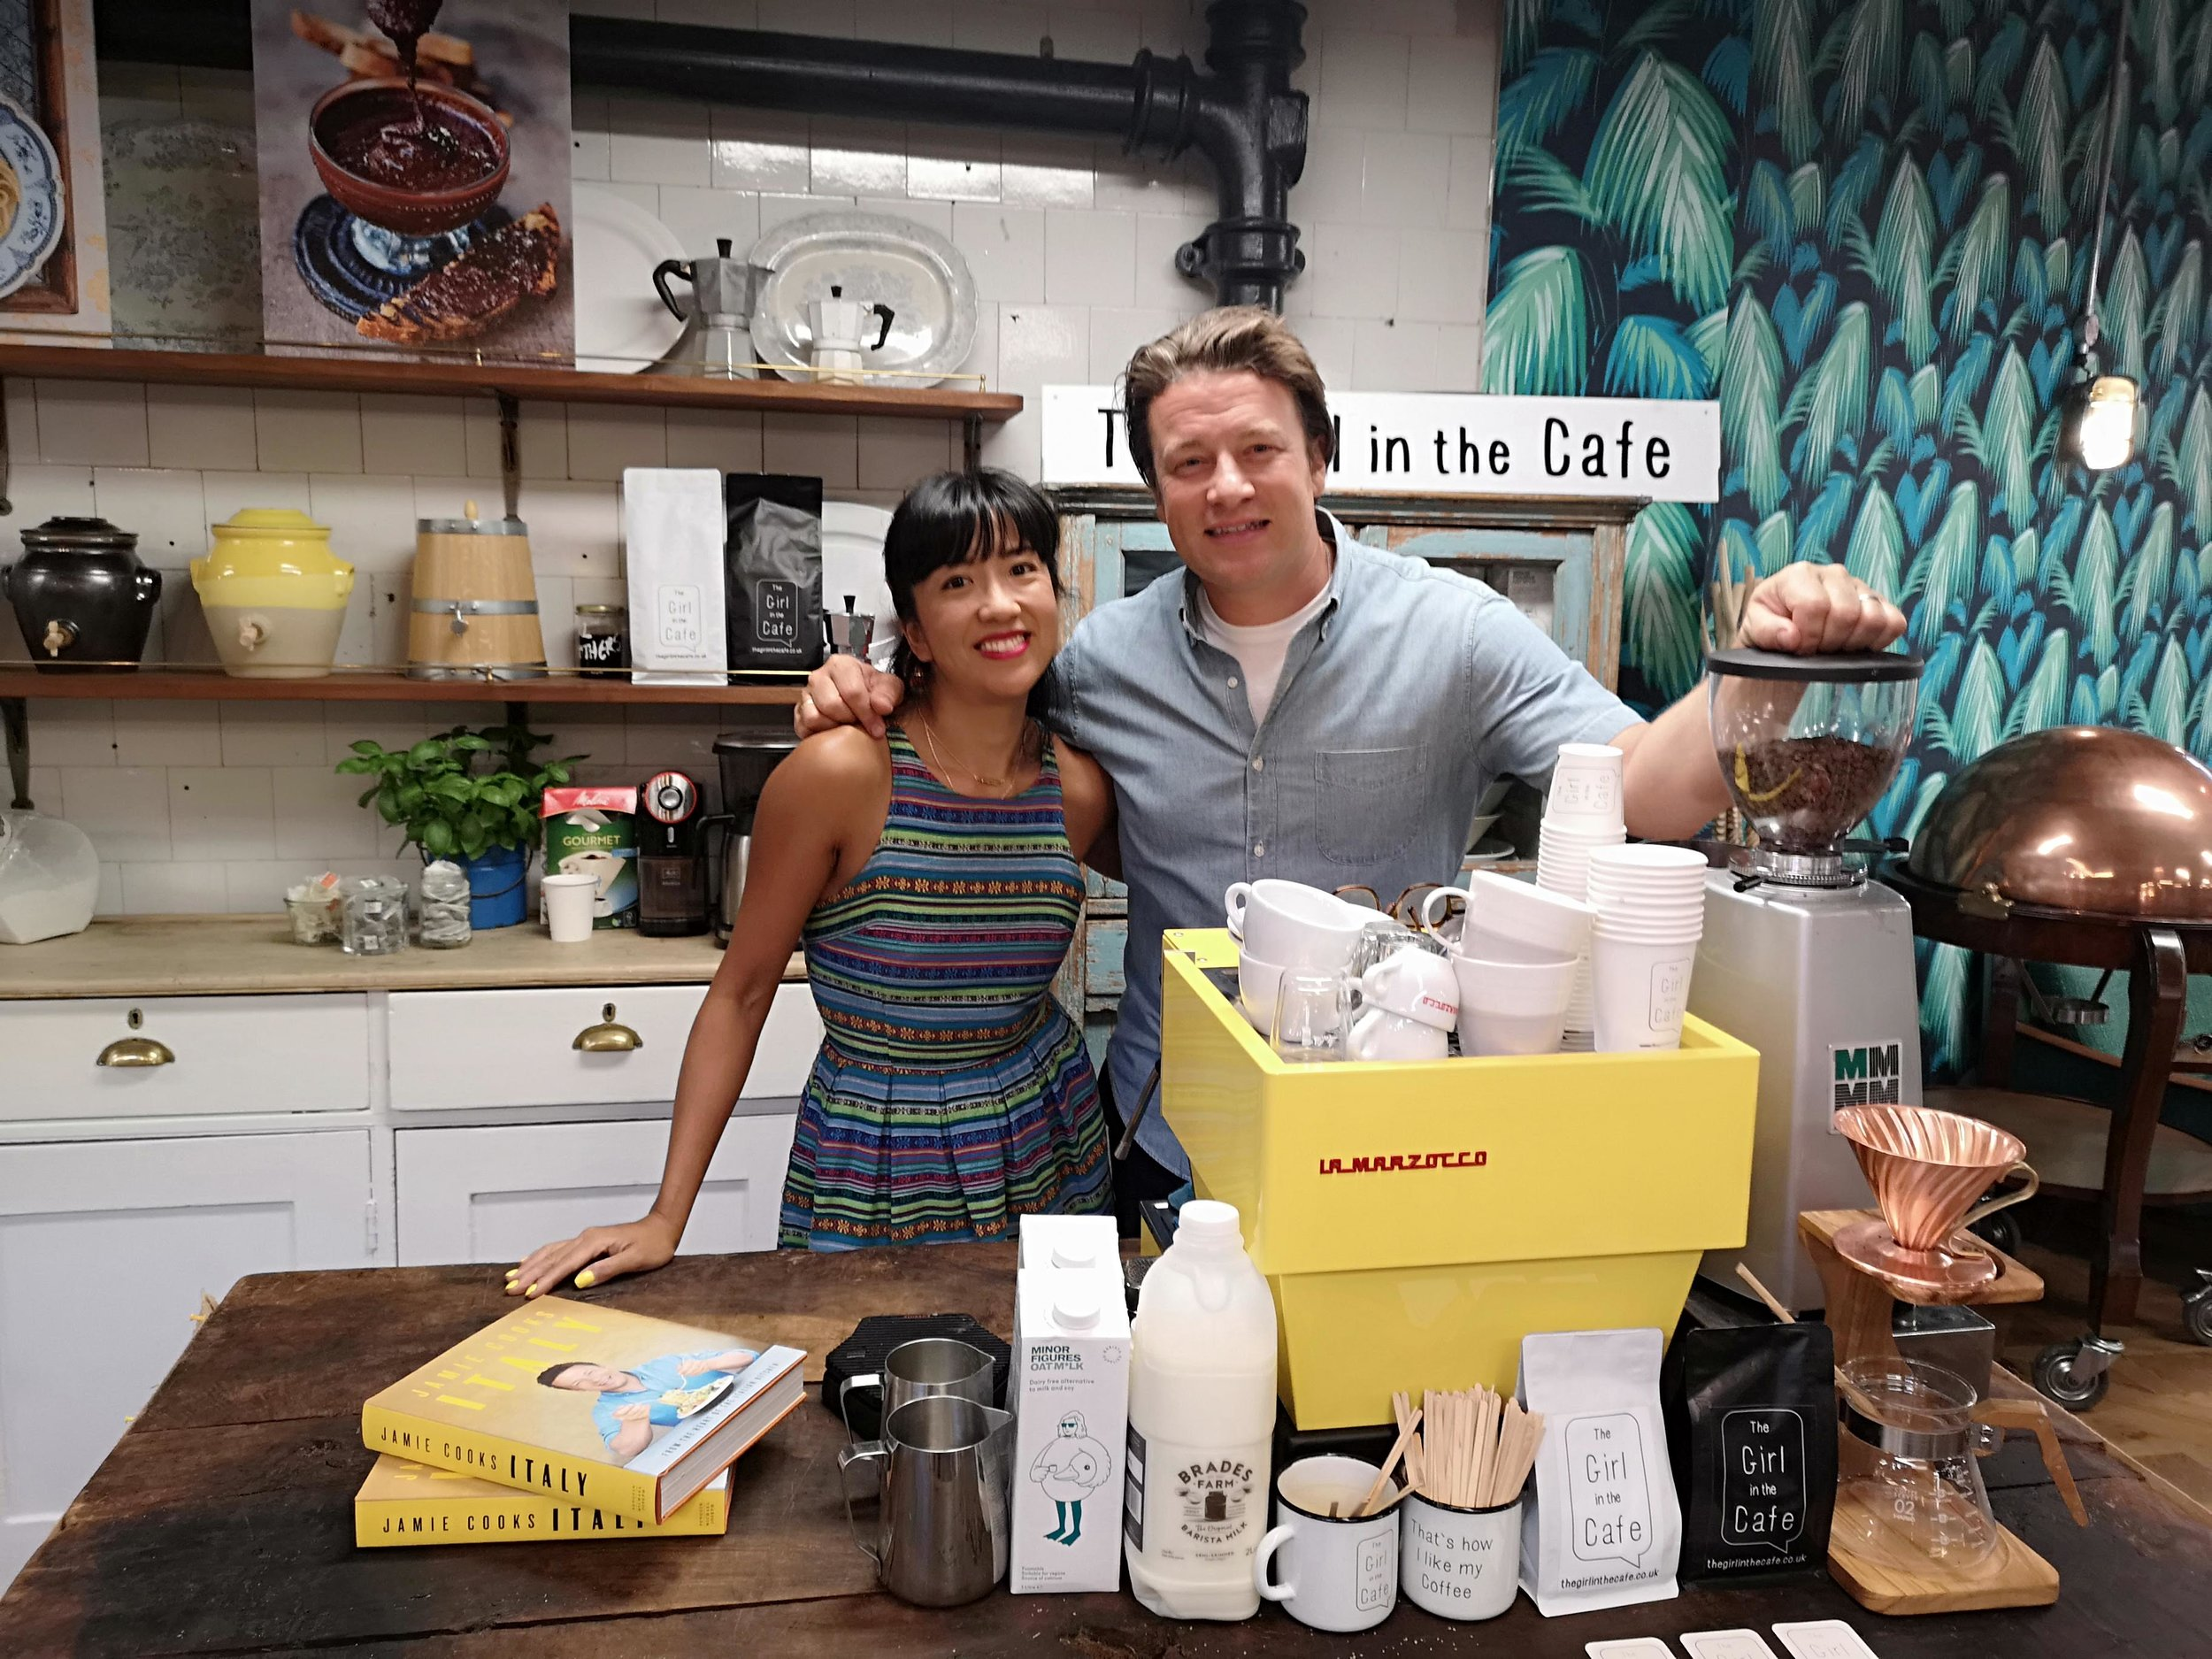 Jamie Oliver International Press Book Launch - Jamie Cooks Italy with mentor Gennaro Contaldo. Again I was invited to make and supply TGITC coffee from my coffee-collab (with The Roastery Dept) for Jamie's international press launch for his impressive new book, Jamie Cooks Italy.Again, it was an absolute blast, especially using a vivid yellow La Marzocco Mini. Busy but great!